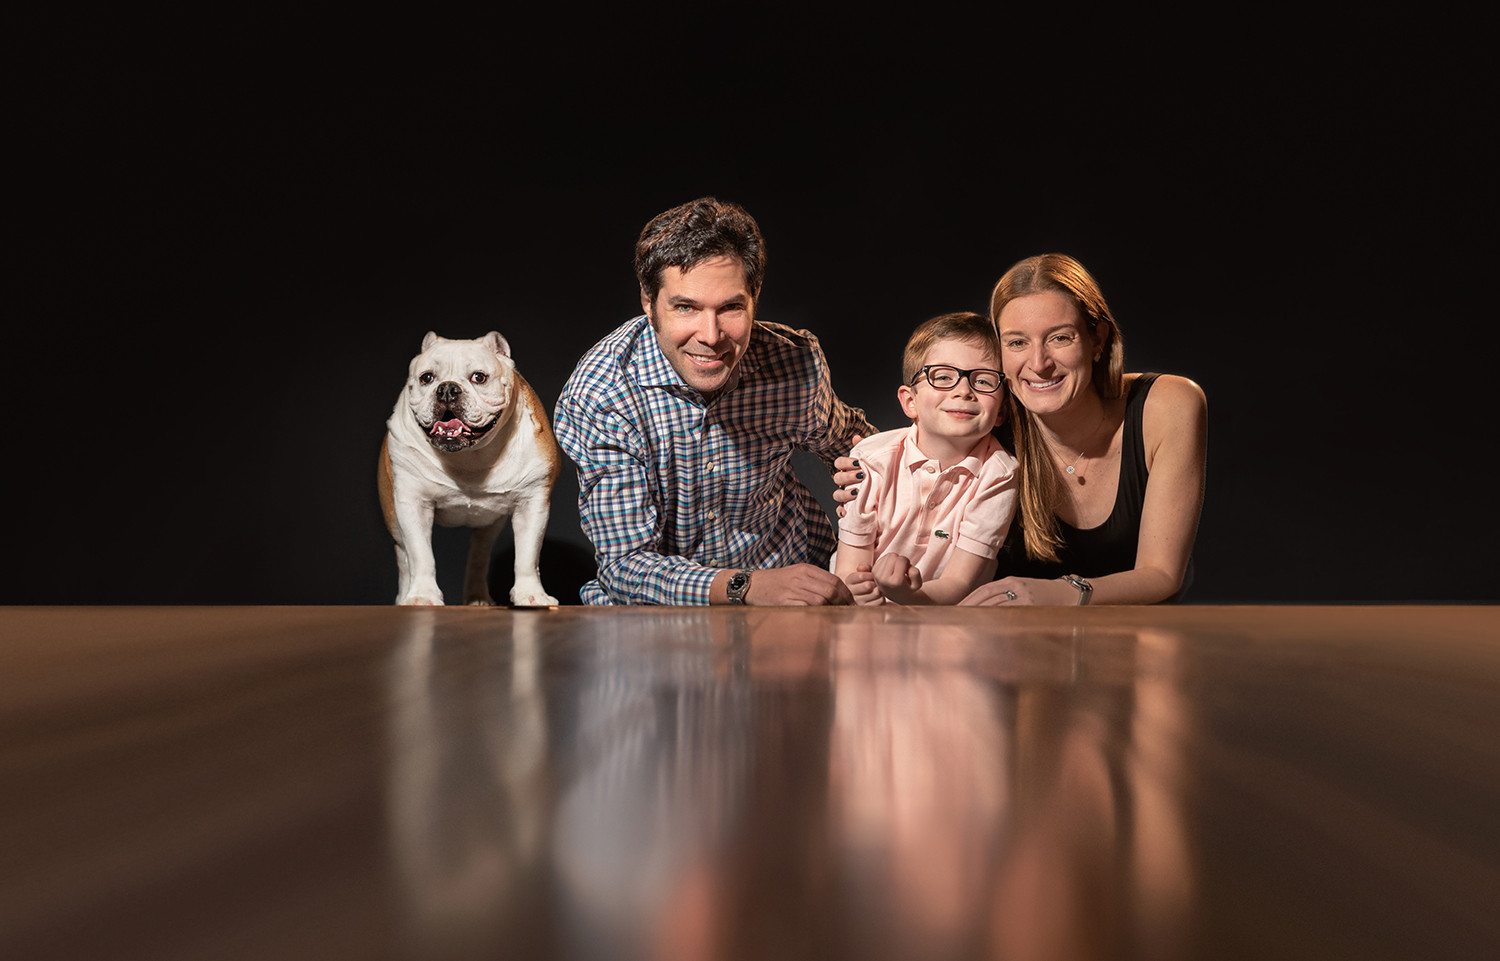 Chicago Pet & Family Photography Studio by Cusic Photography 021